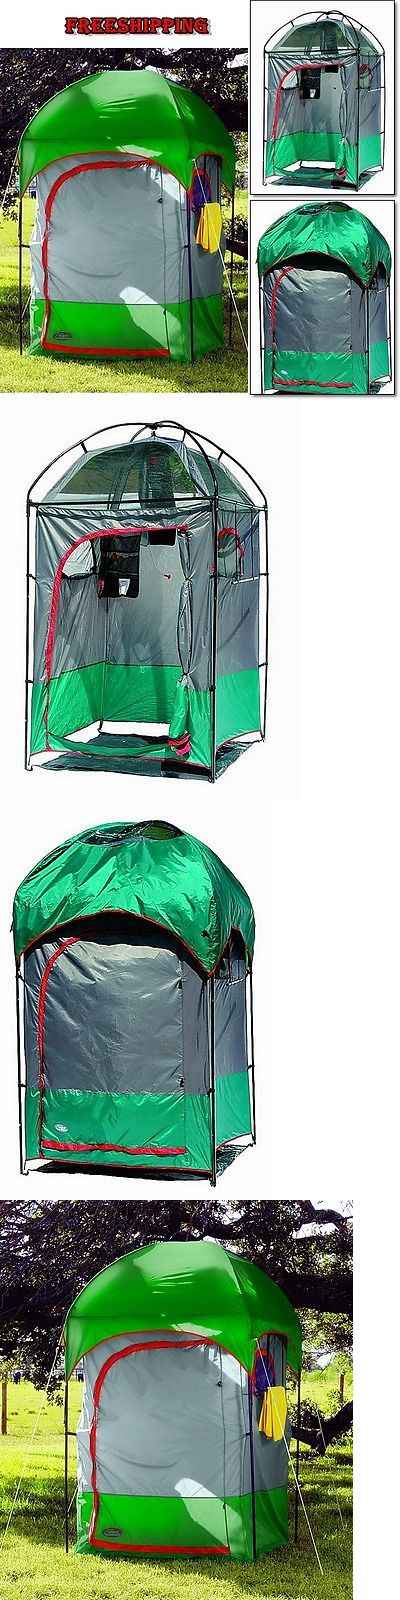 Portable Showers and Accessories 181396: Portable Shower Tent Large Room Toilet Privacy Zippered Outdoor Camping Shelter BUY IT NOW ONLY: $153.97